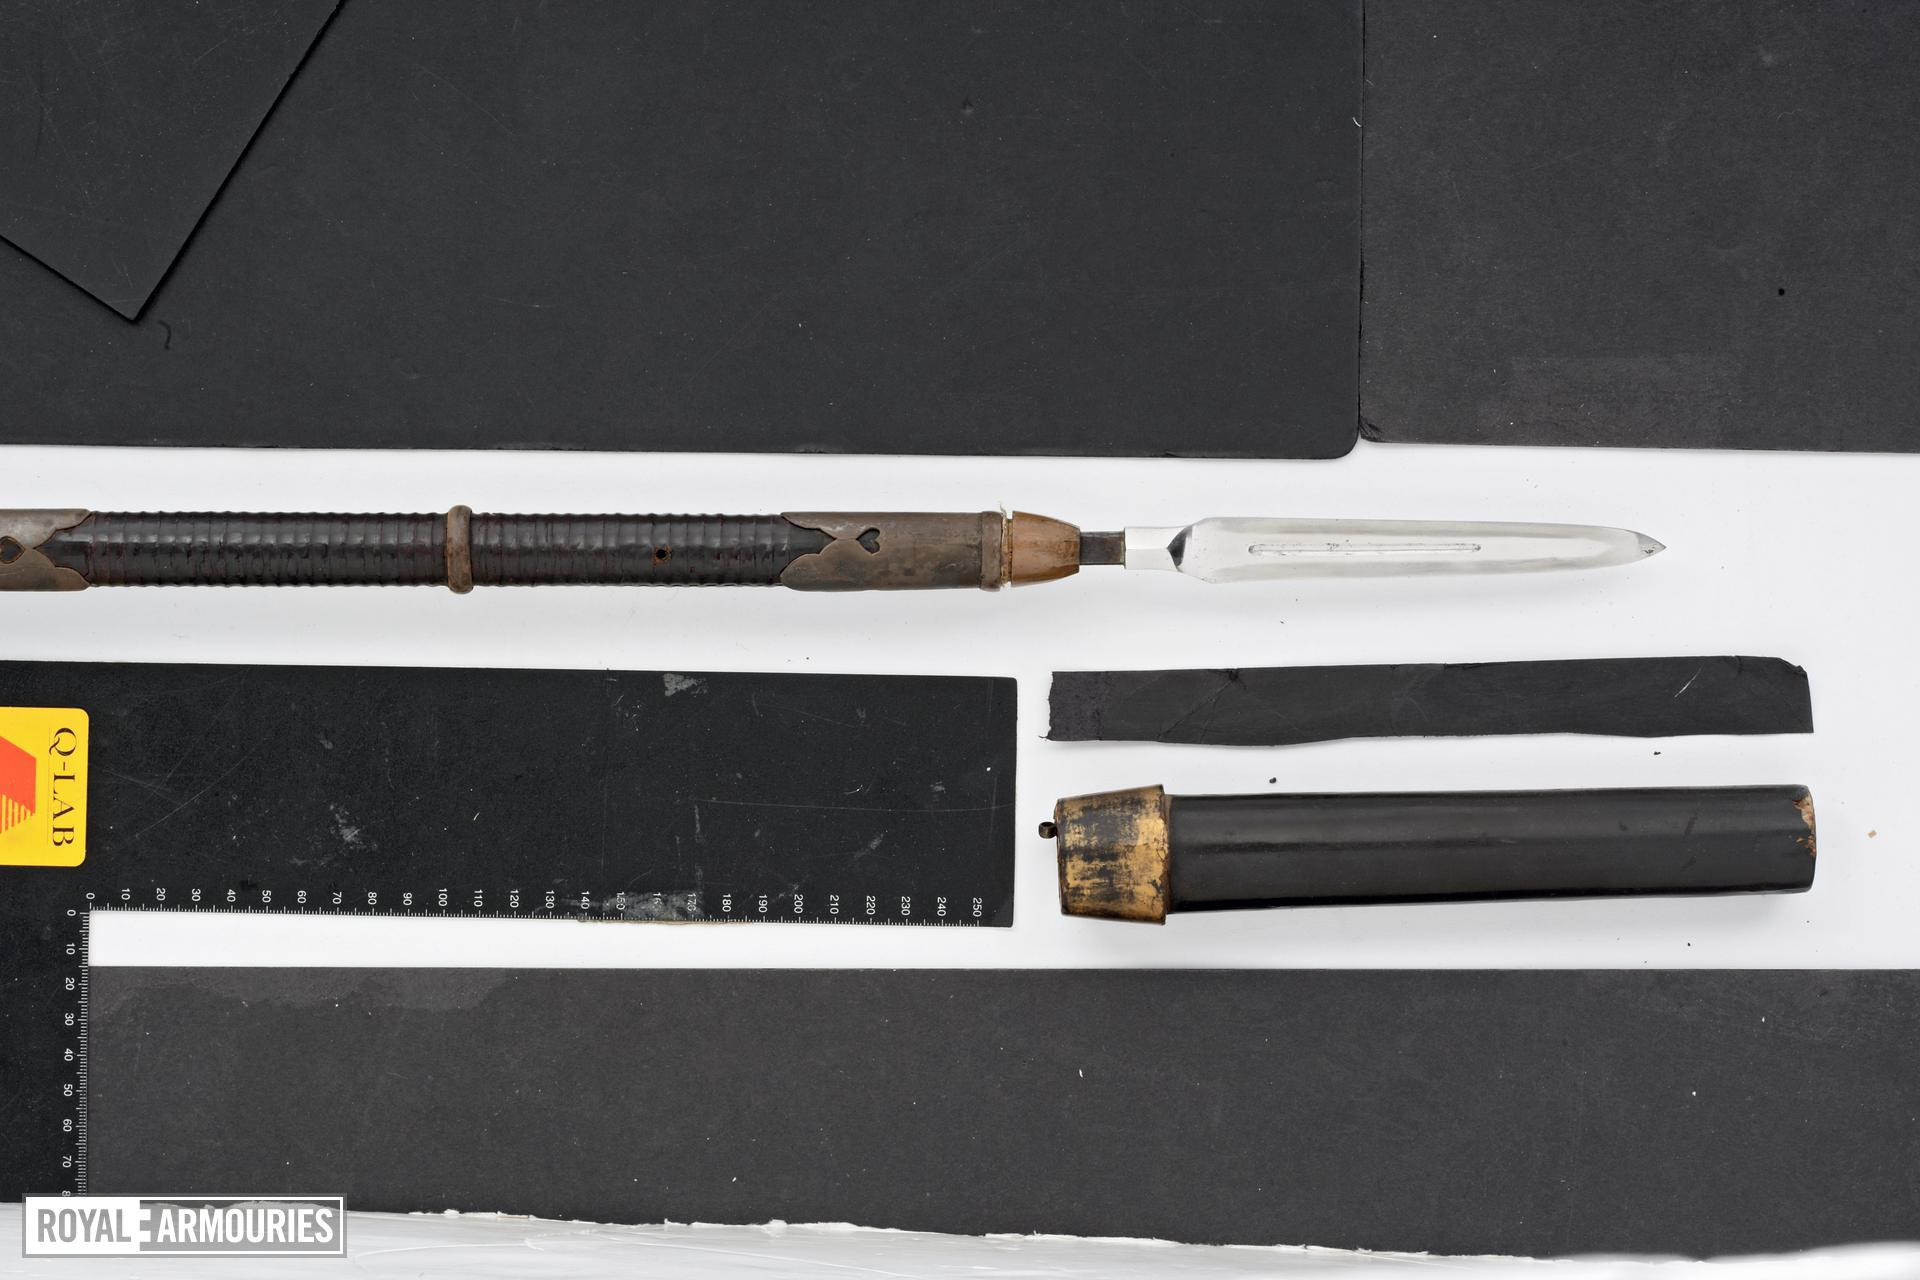 Long spear with a spear tube